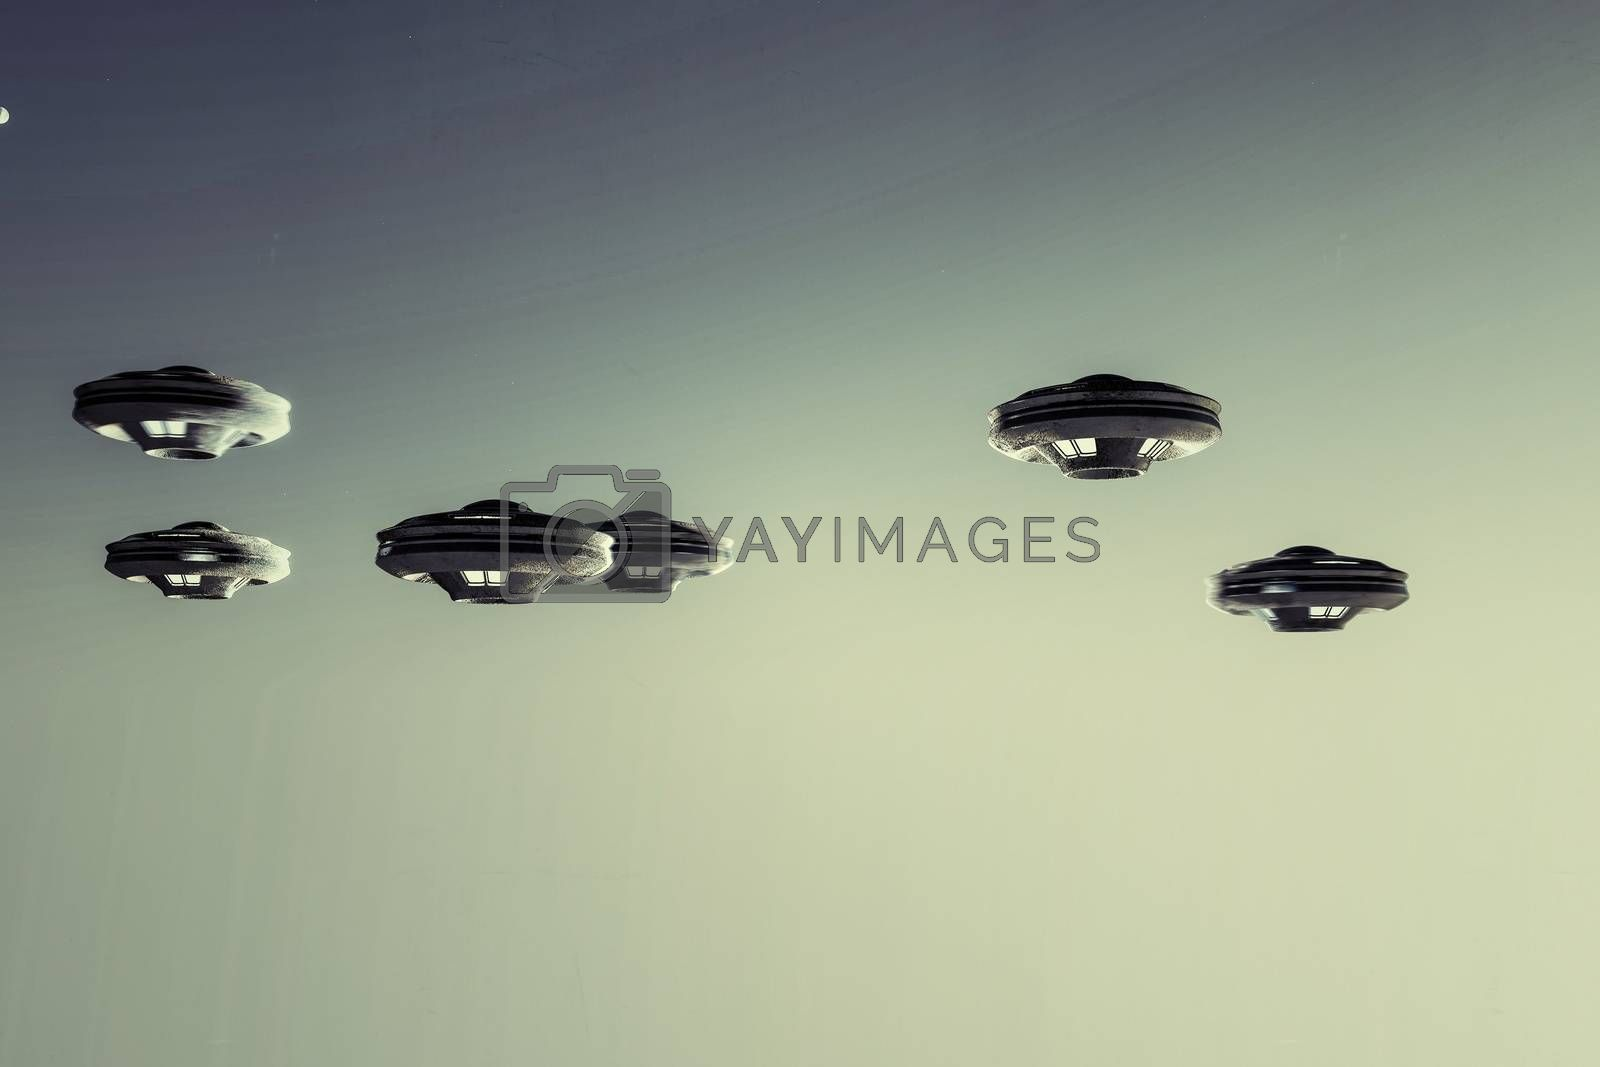 ufo spaceships flying in the sky